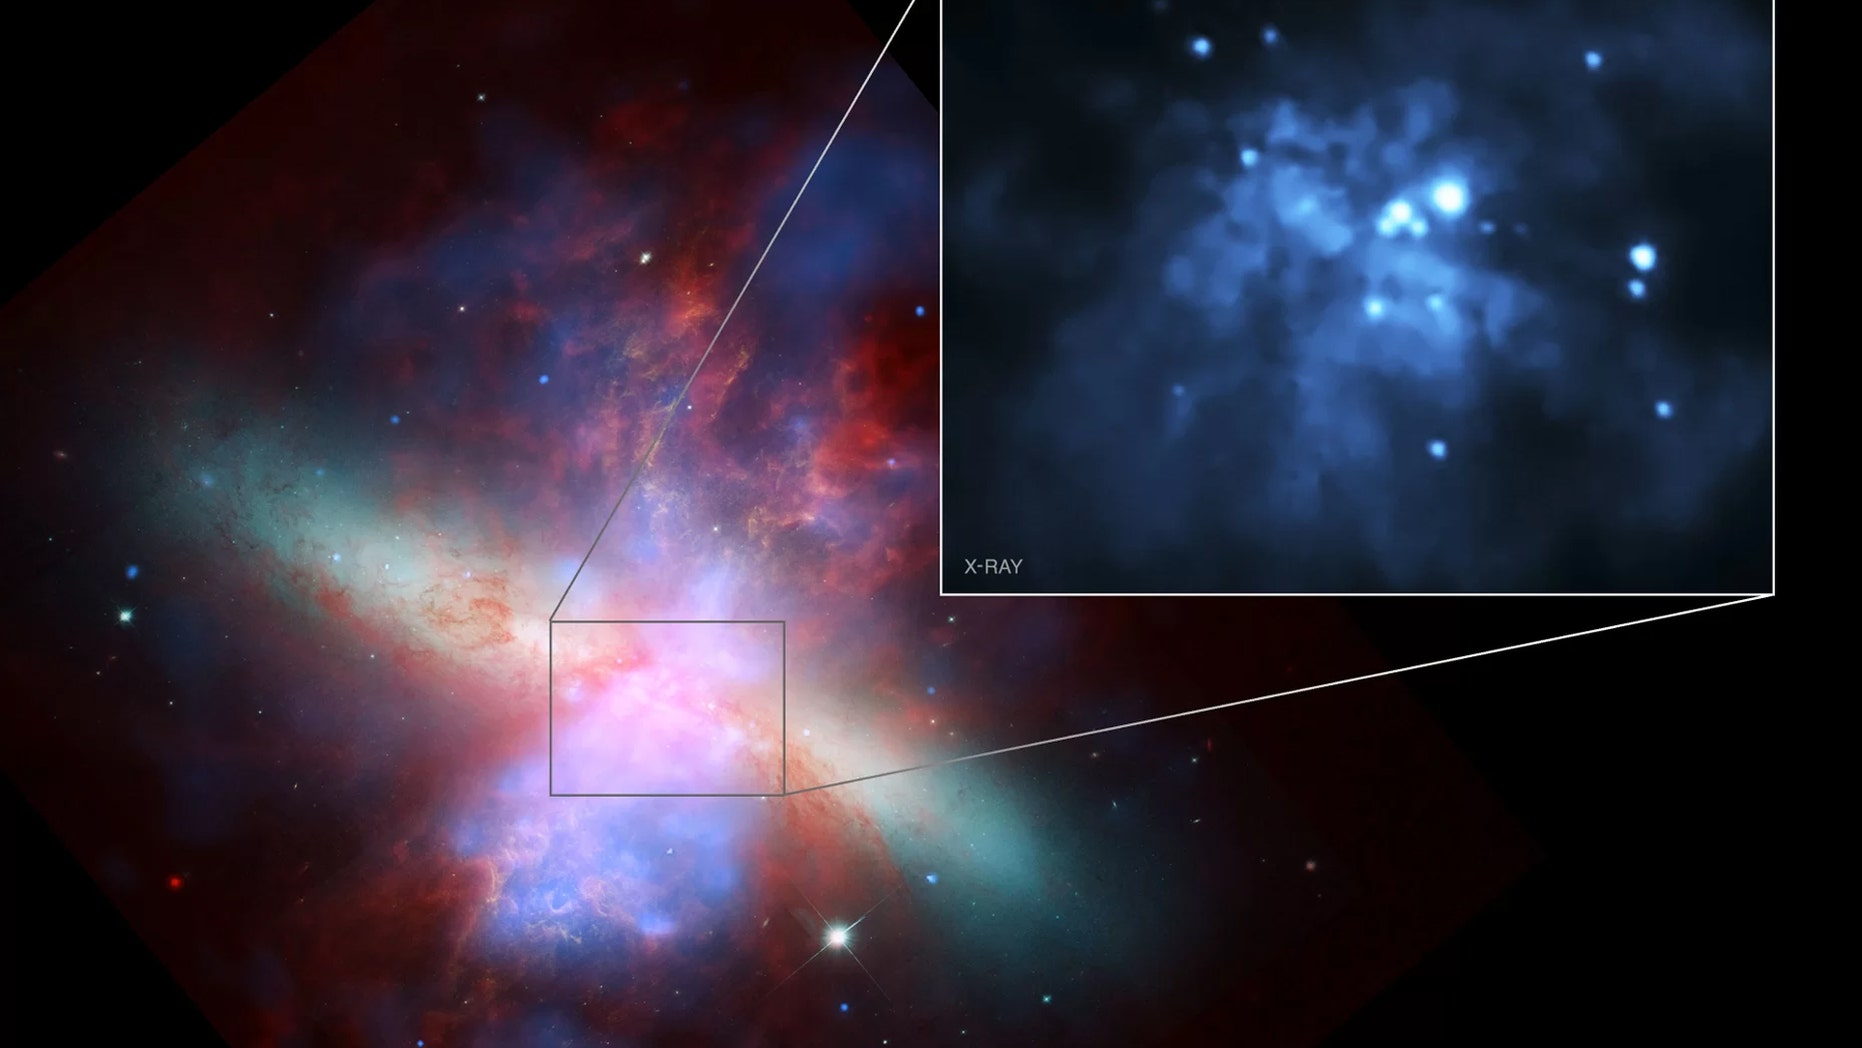 An image of the galaxy Messier 82 compiling data from NASA's Chandra X-Ray Observatory, Hubble Space Telescope and Spitzer Space Telescope. The intermediate-mass black hole M82 X-1 is the brightest object in the inset, at about 2 o'clock near the galaxy's center. Credit: NASA/H. Feng et al.